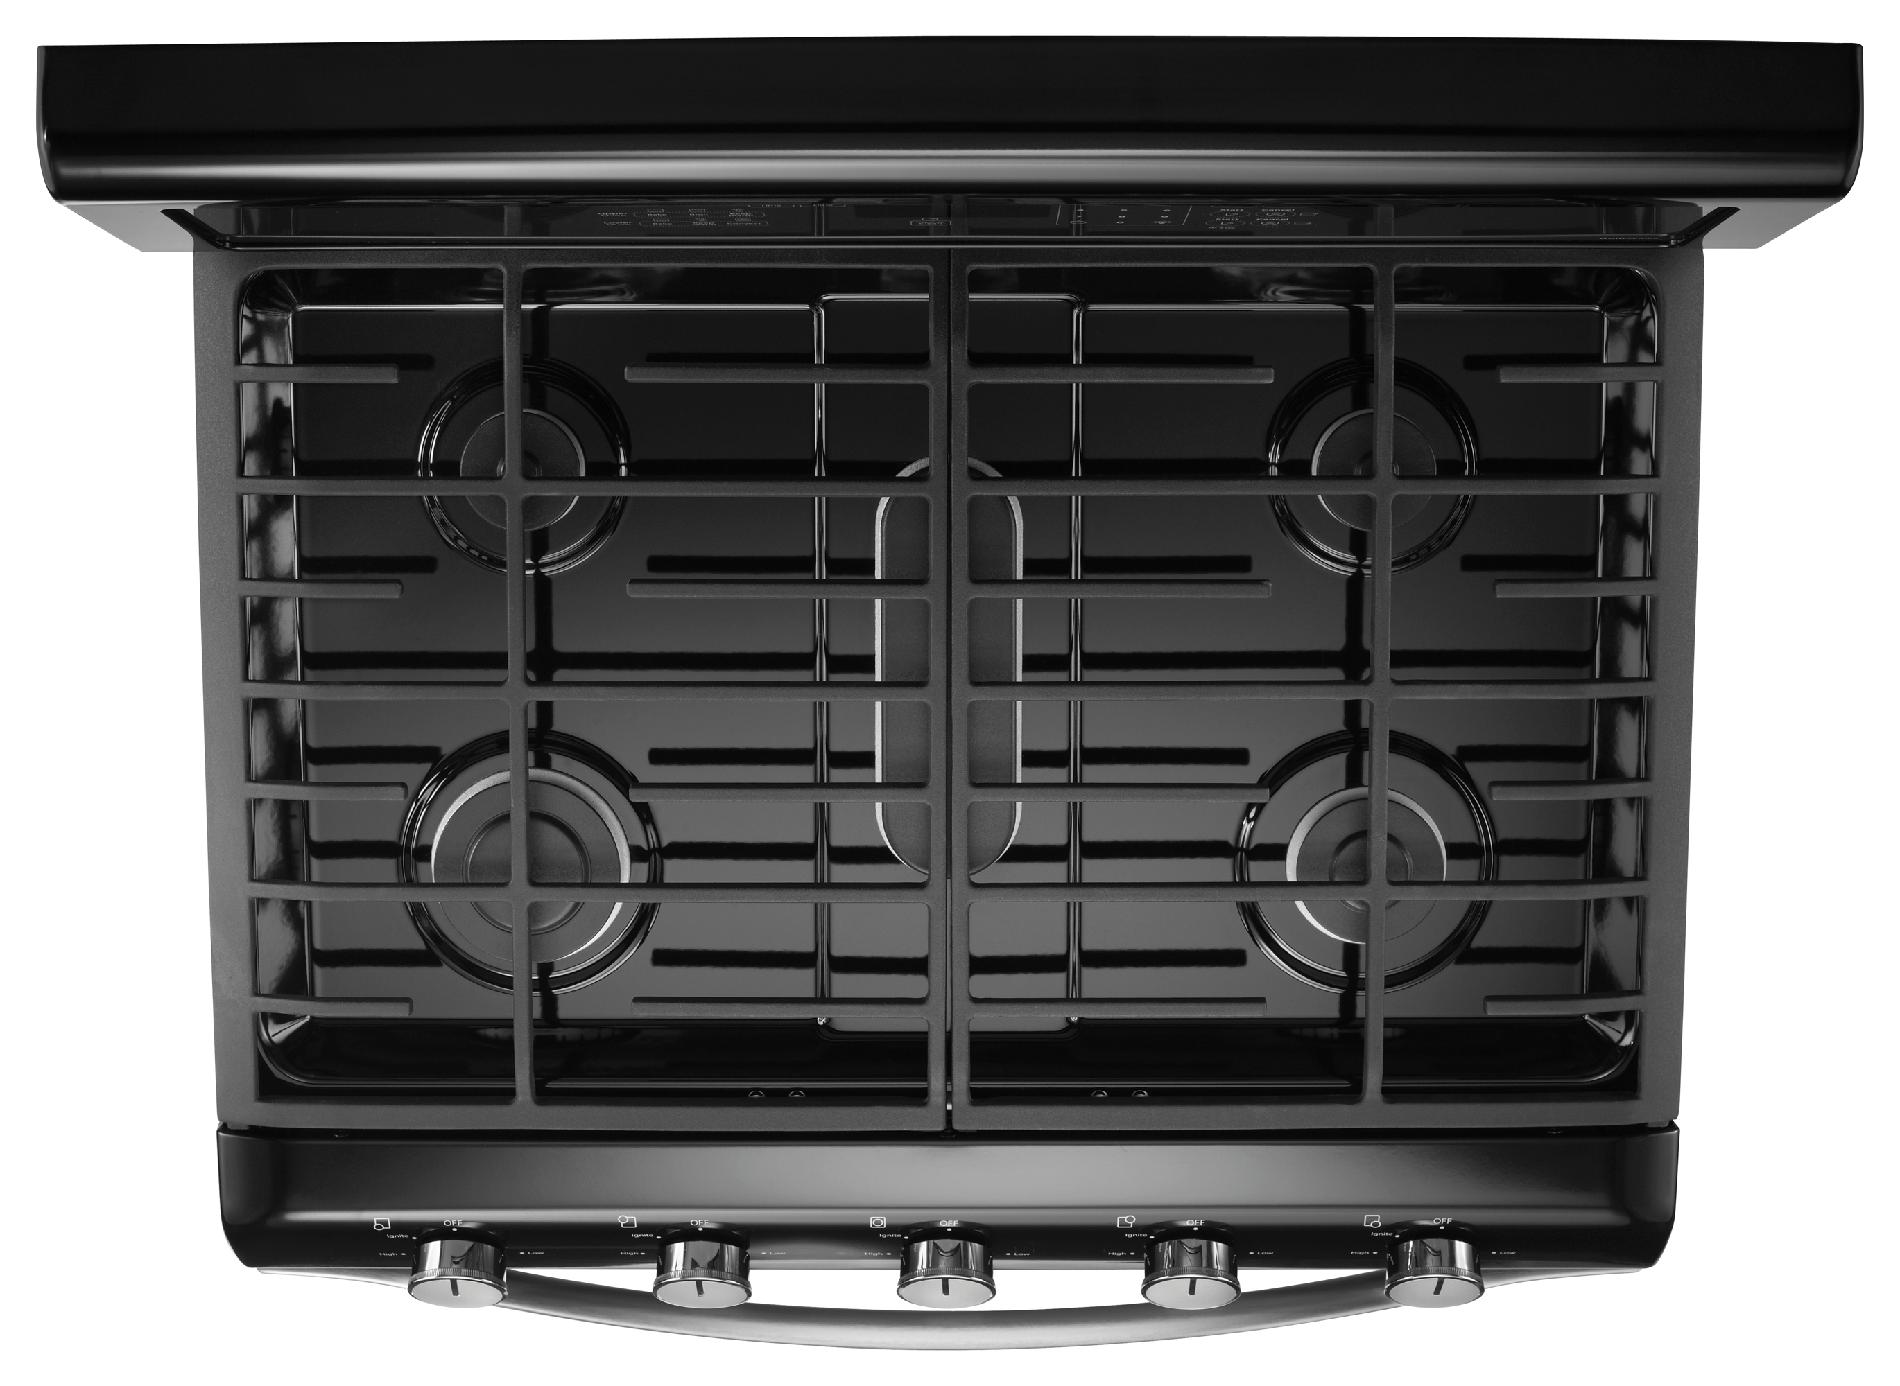 Whirlpool WGG755S0BE 3.9 cu. ft. Gas Range w/ TimeSavor™ Convection Cooking - Black Ice